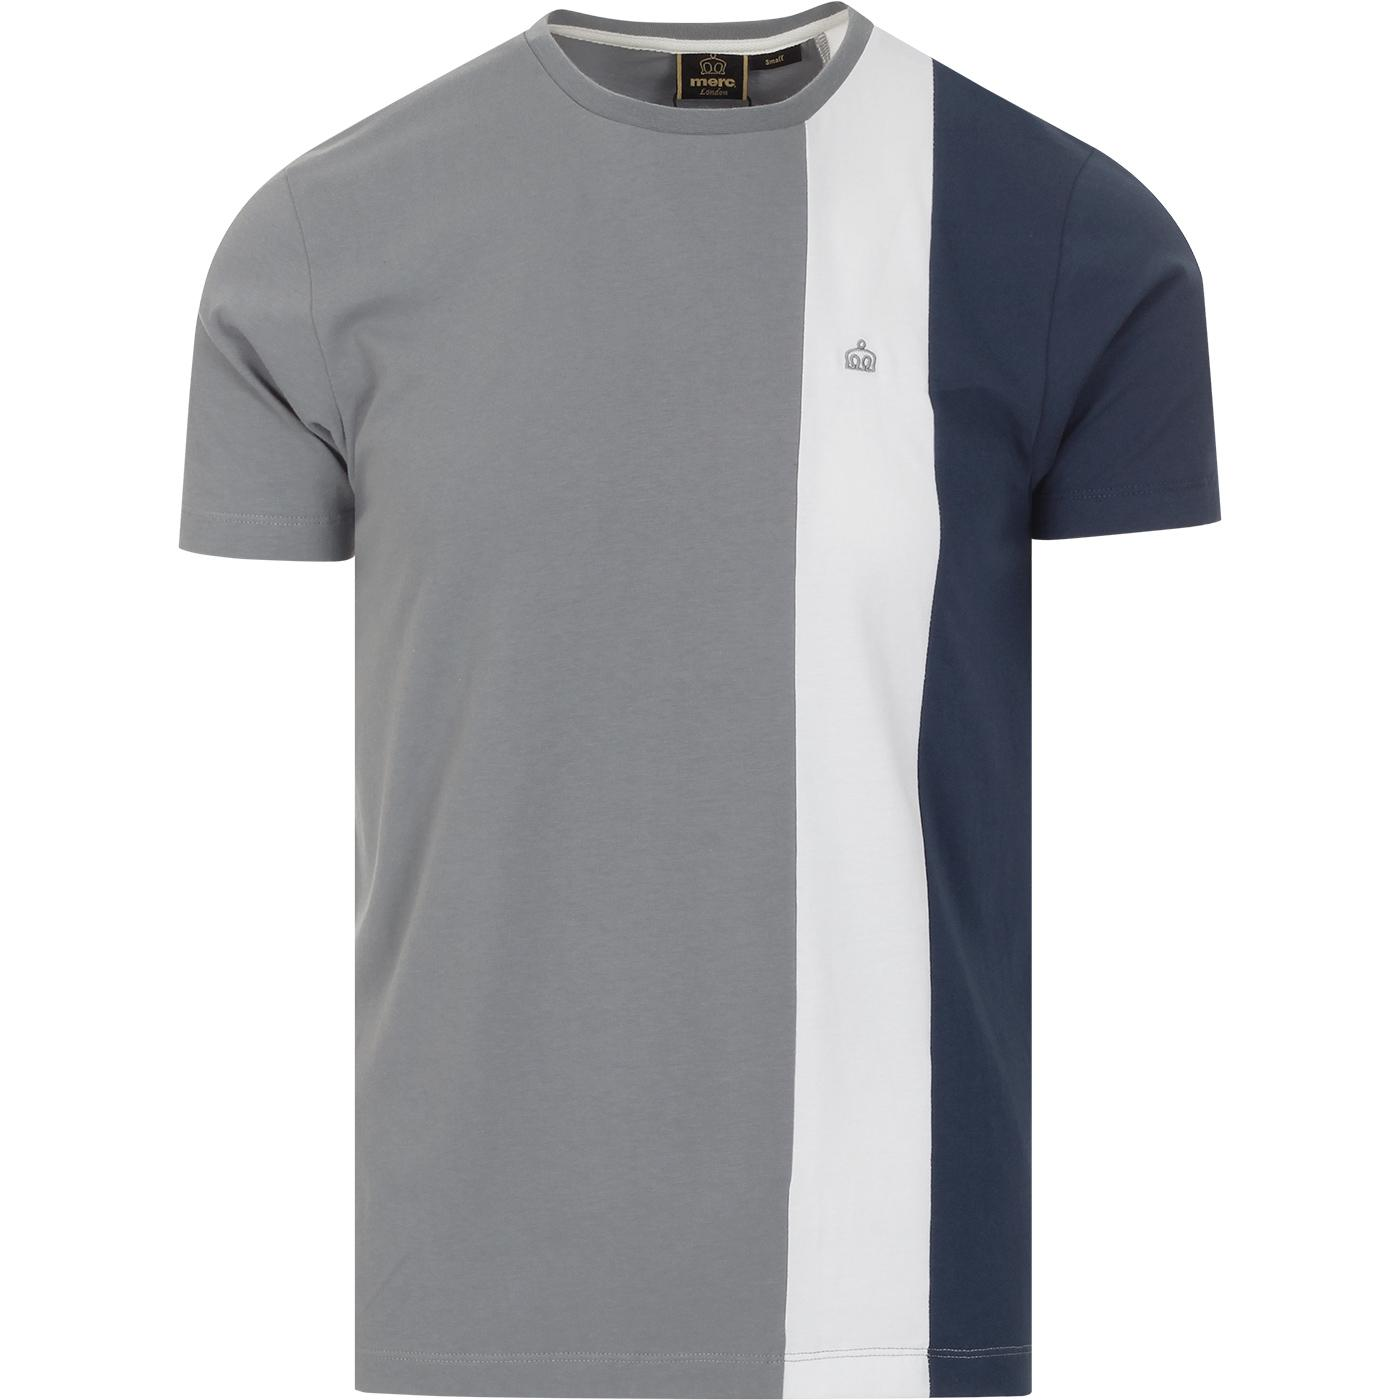 Naples MERC Retro Mod Block Stripe T-shirt (Slate)